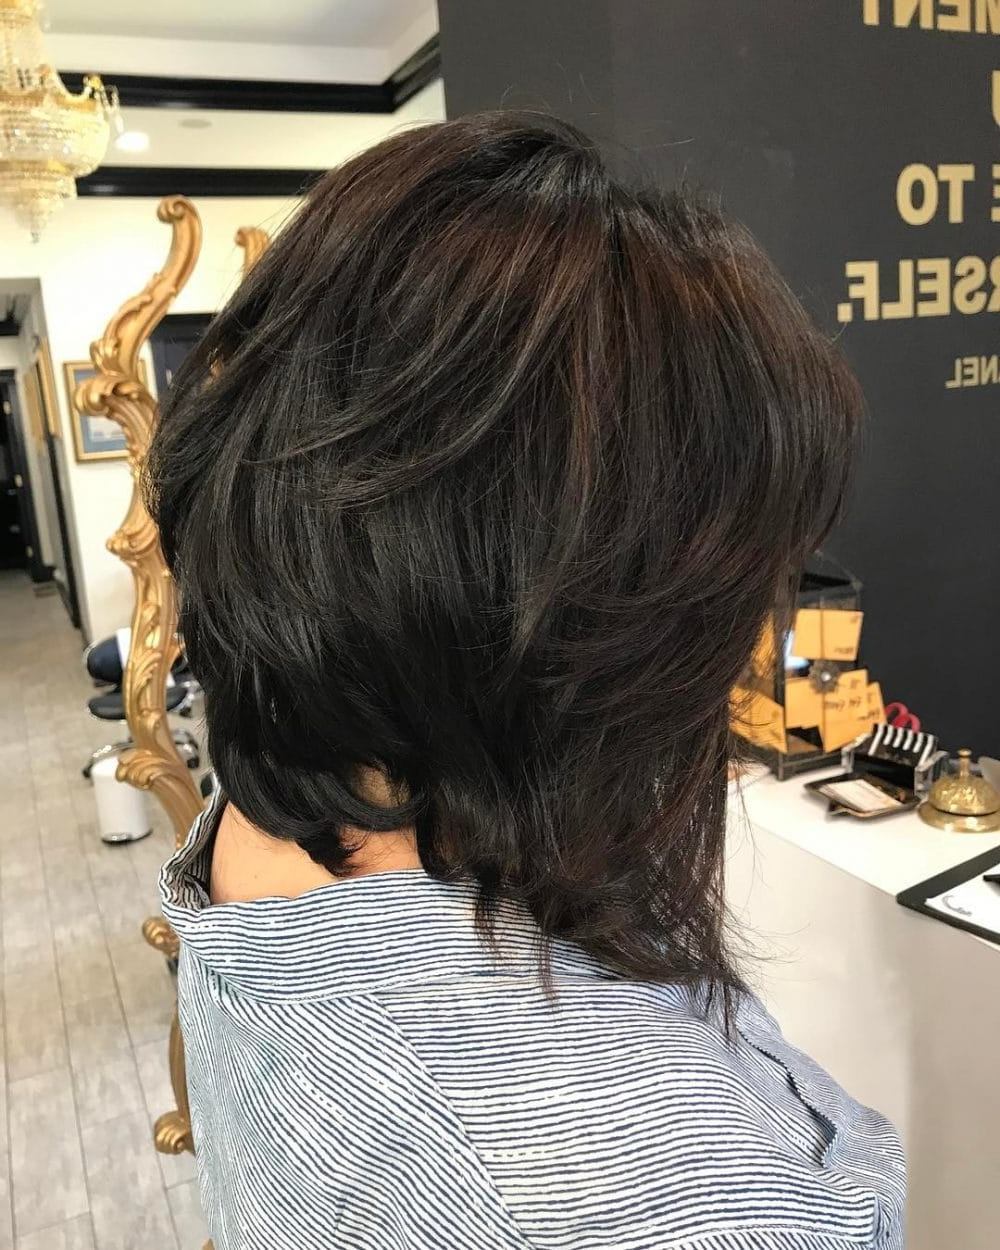 26 Modern Shag Haircuts To Try In 2019 Regarding Famous Dynamic Feathered Brunette Shag Haircuts (View 14 of 20)